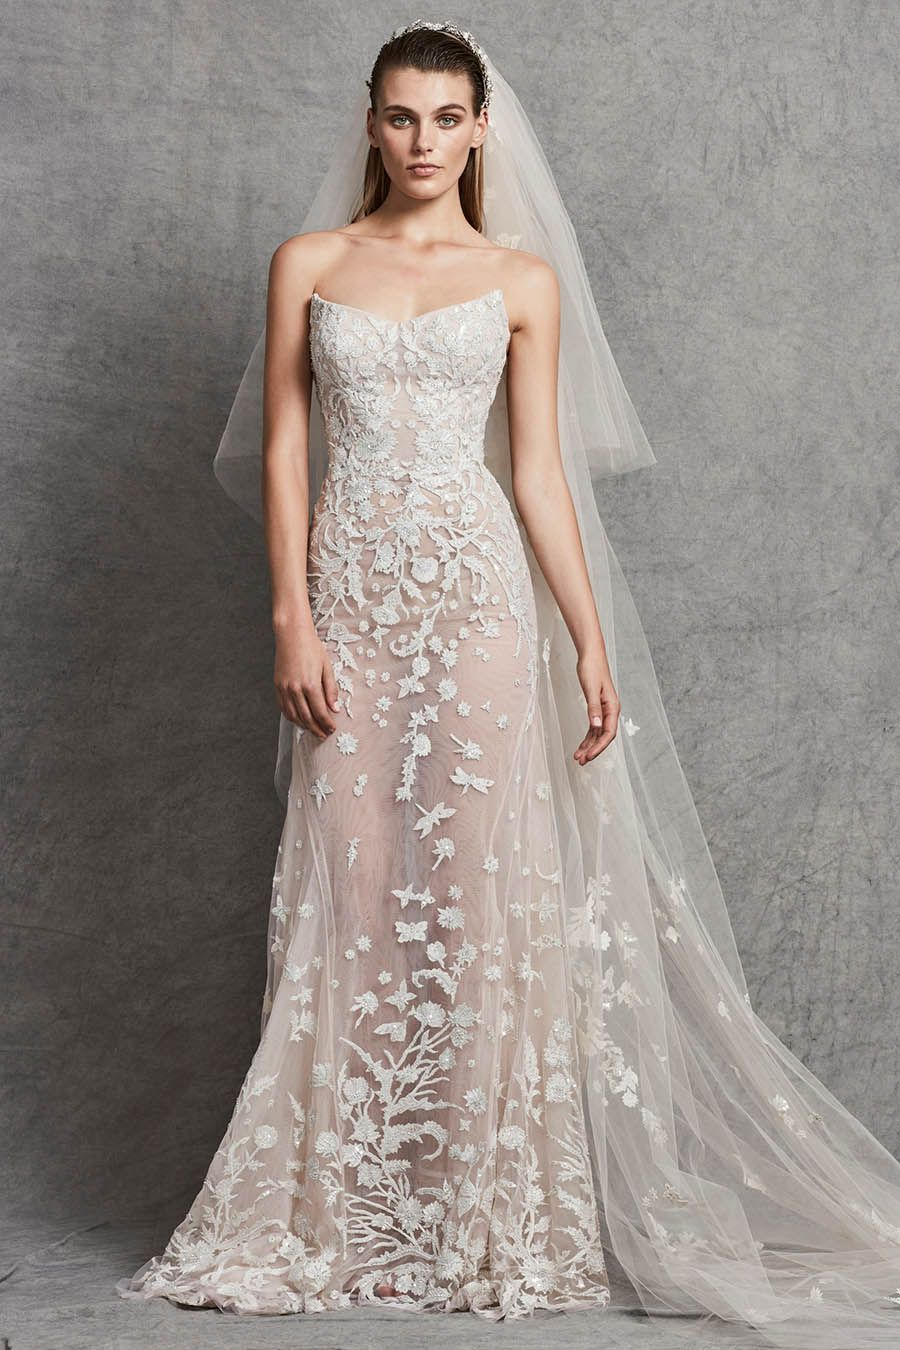 Sheer see through sleeveless tube top wedding dress with short veil ...